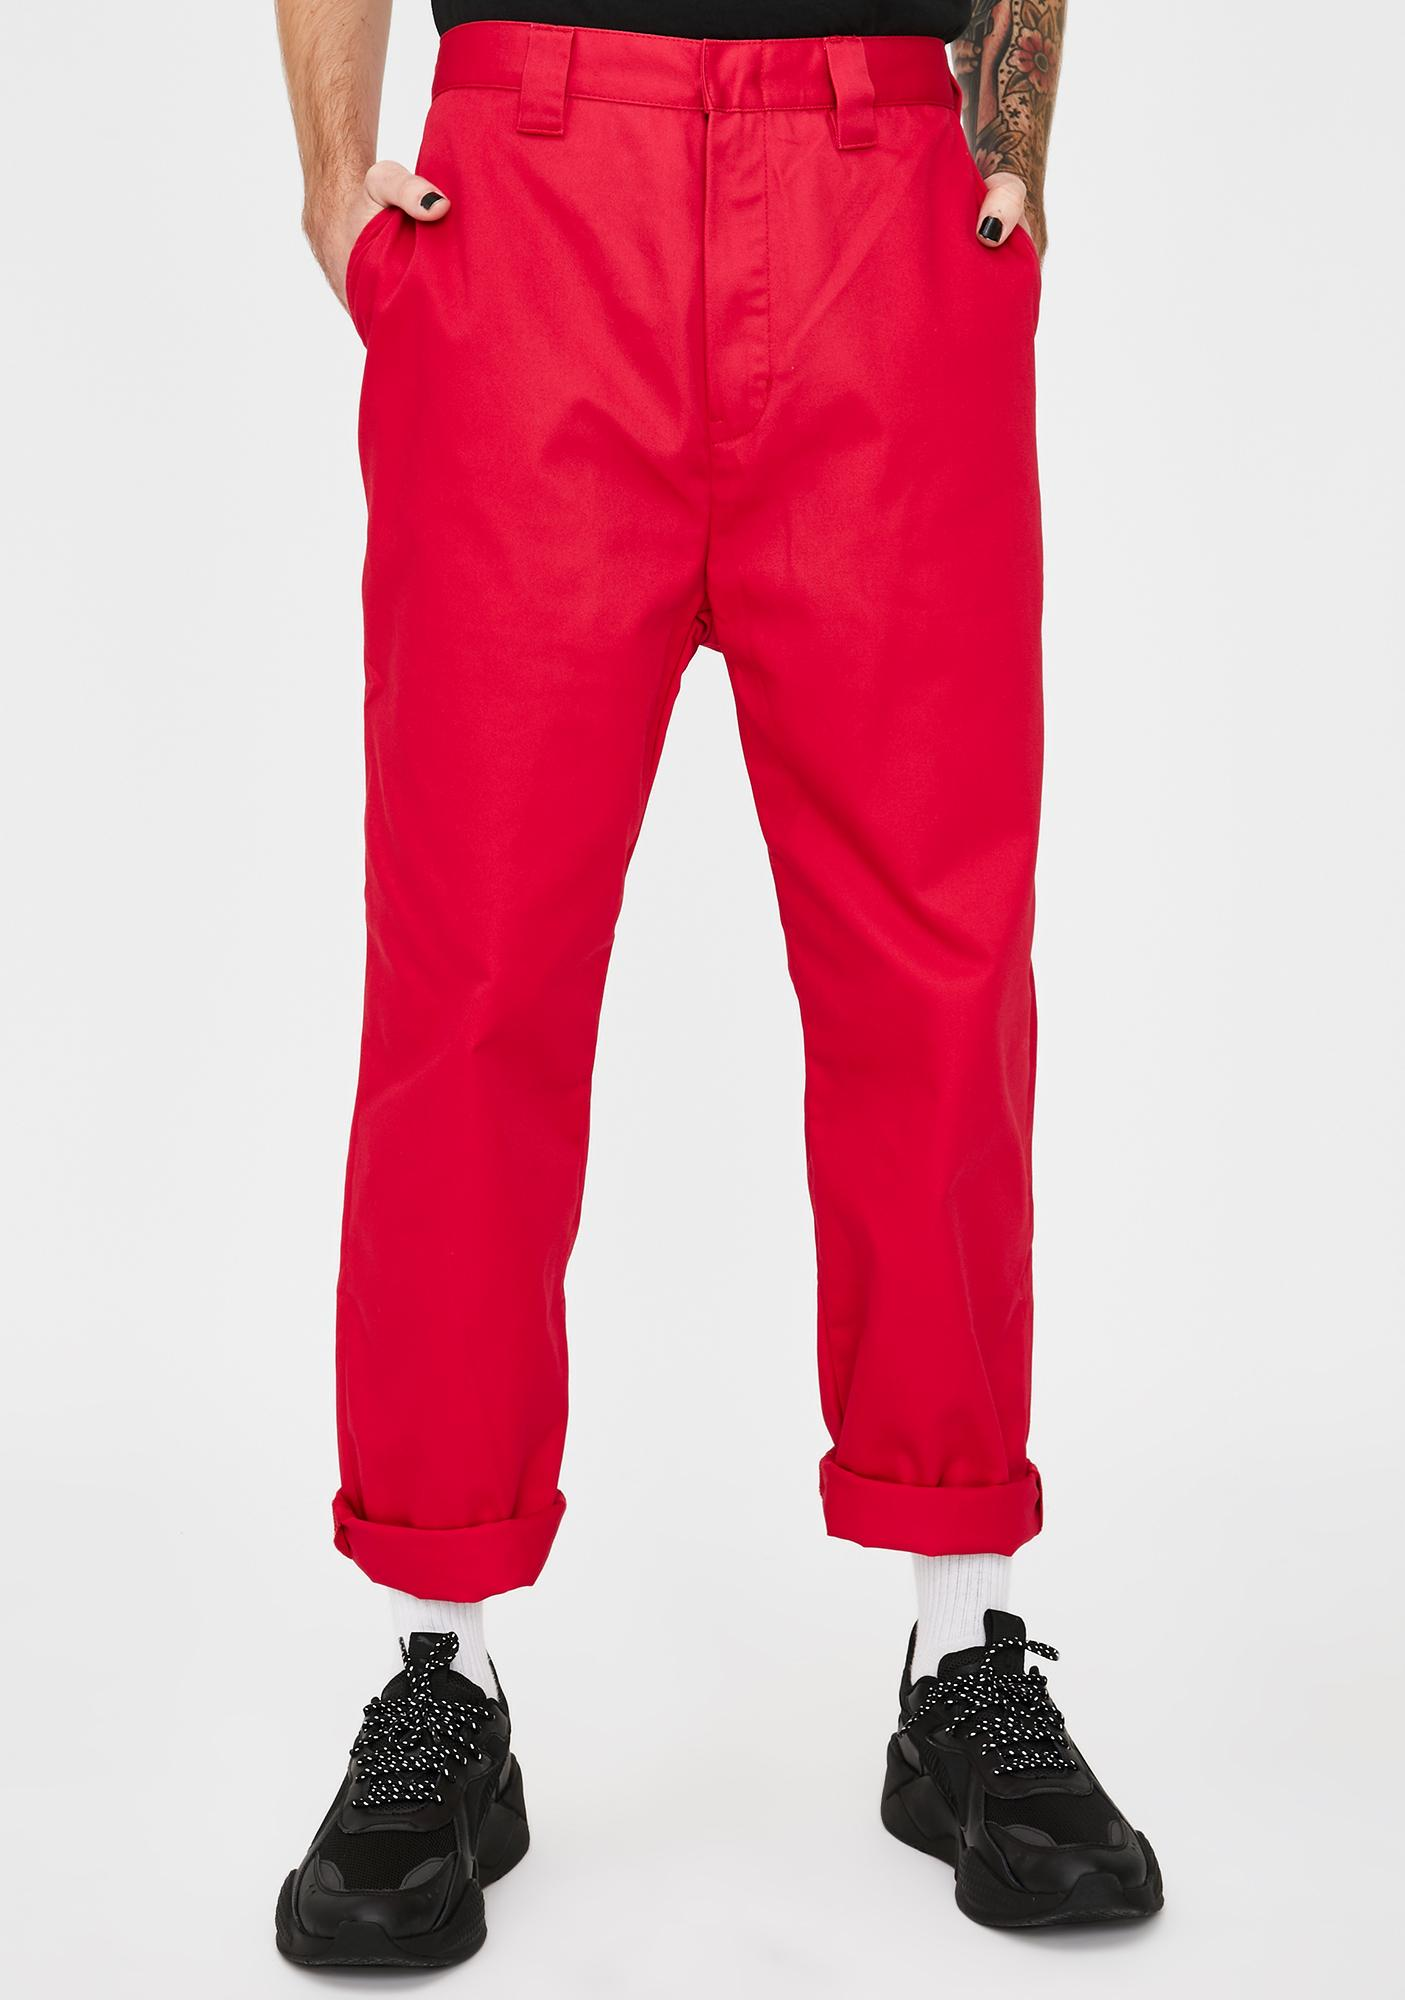 XLARGE Fuchsia Patched Work Pants